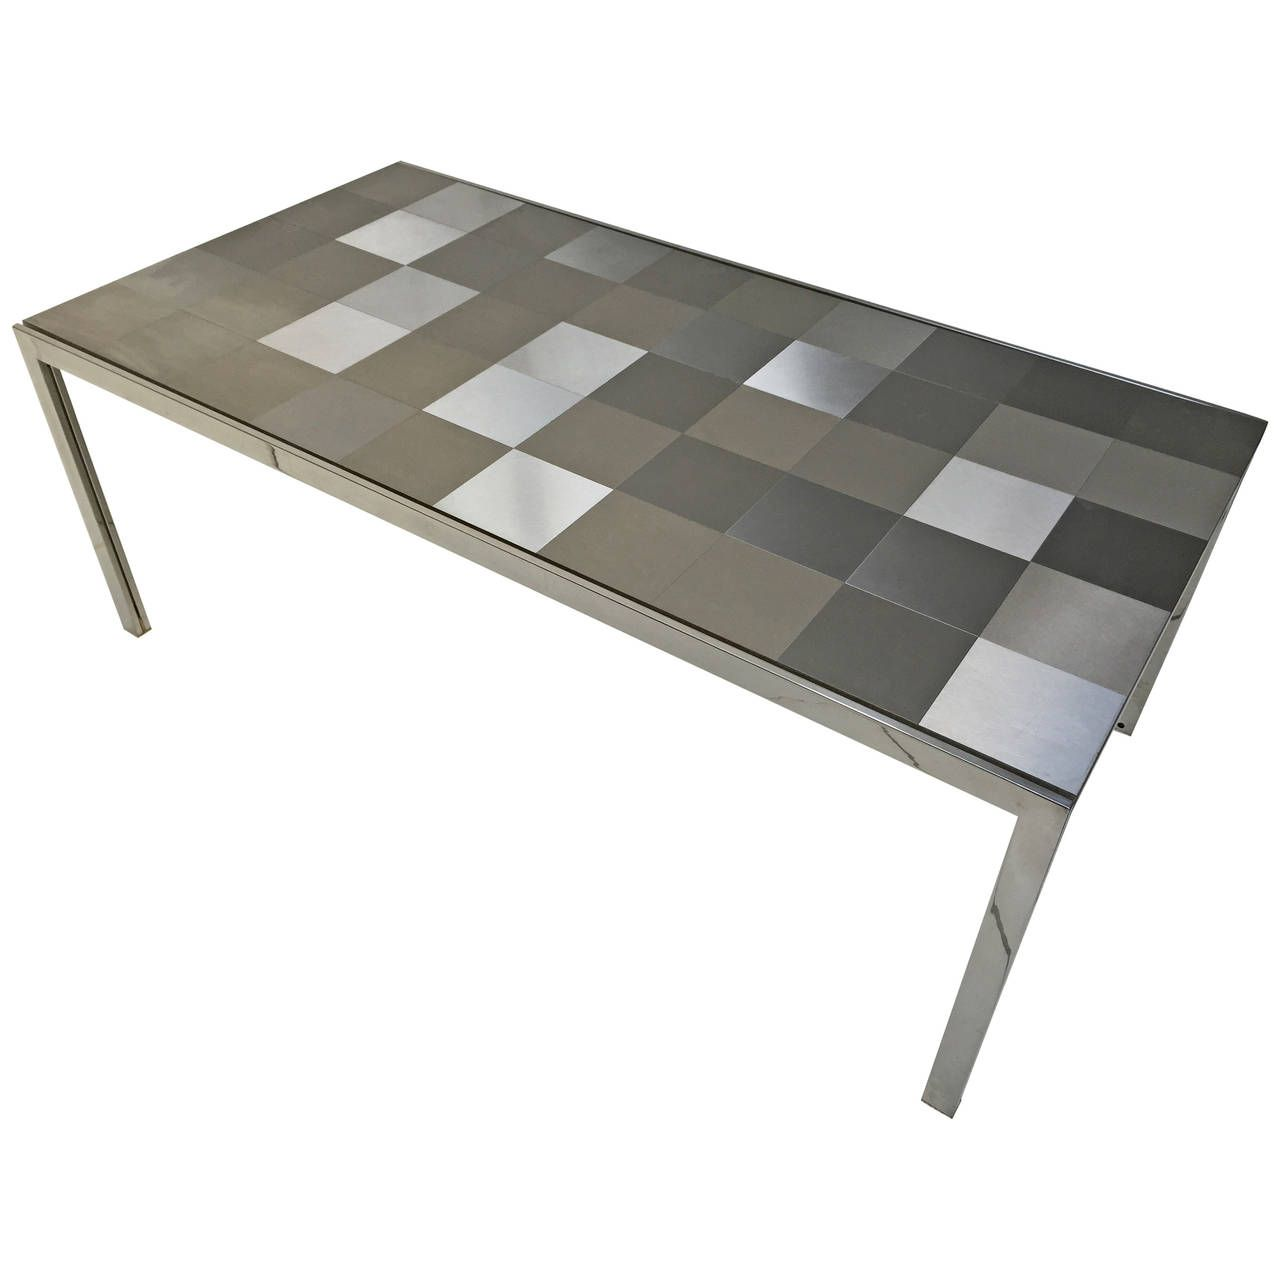 Stainless Steel Luar Op Art Dining Table By Ross Littell For Icf Dining Table Stainless Steel Tile Dining Room Table